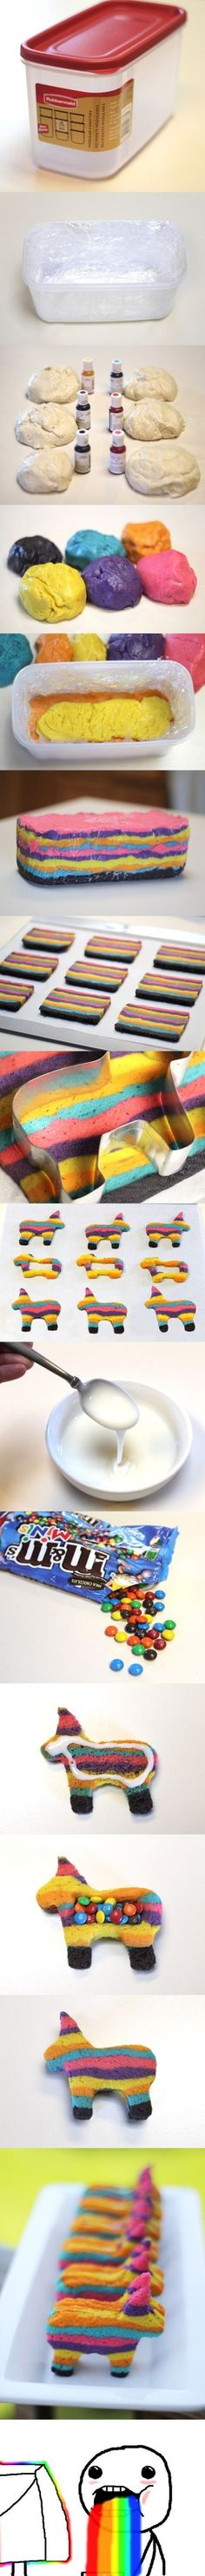 Pinata Cookies! Awesome!